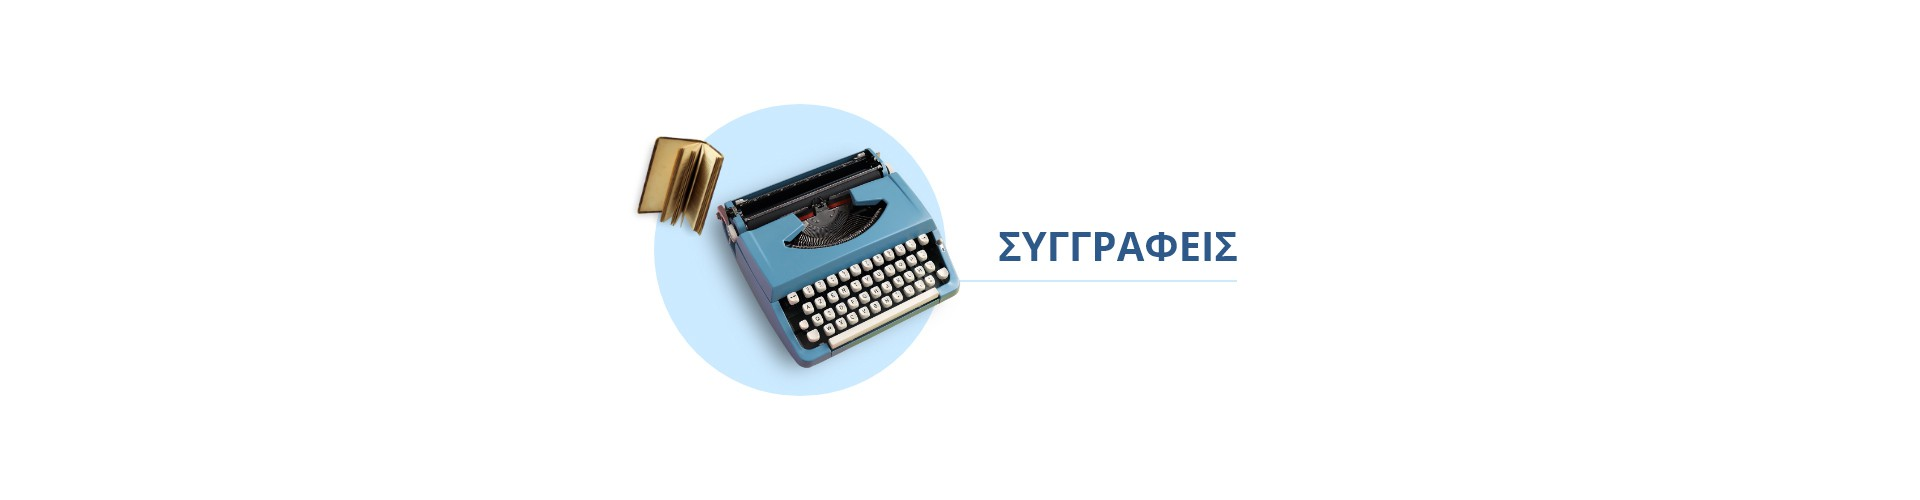 S3.gy.digital%2fparisianou gr%2fuploads%2fasset%2fdata%2f110%2fmain banner for authors